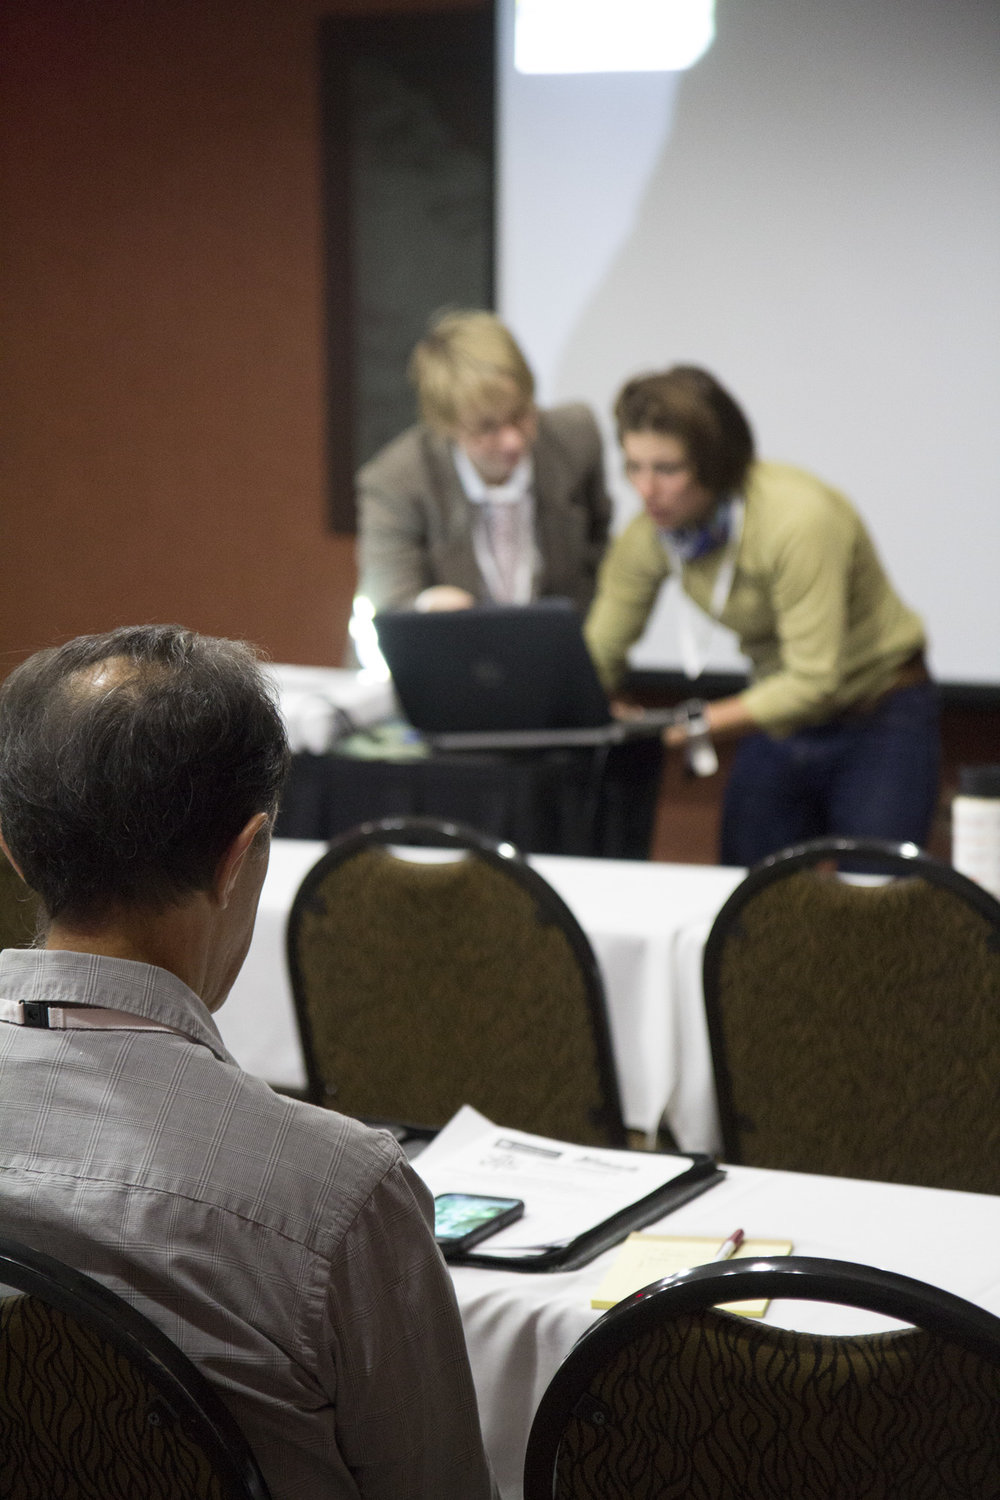 Conference-128.jpg